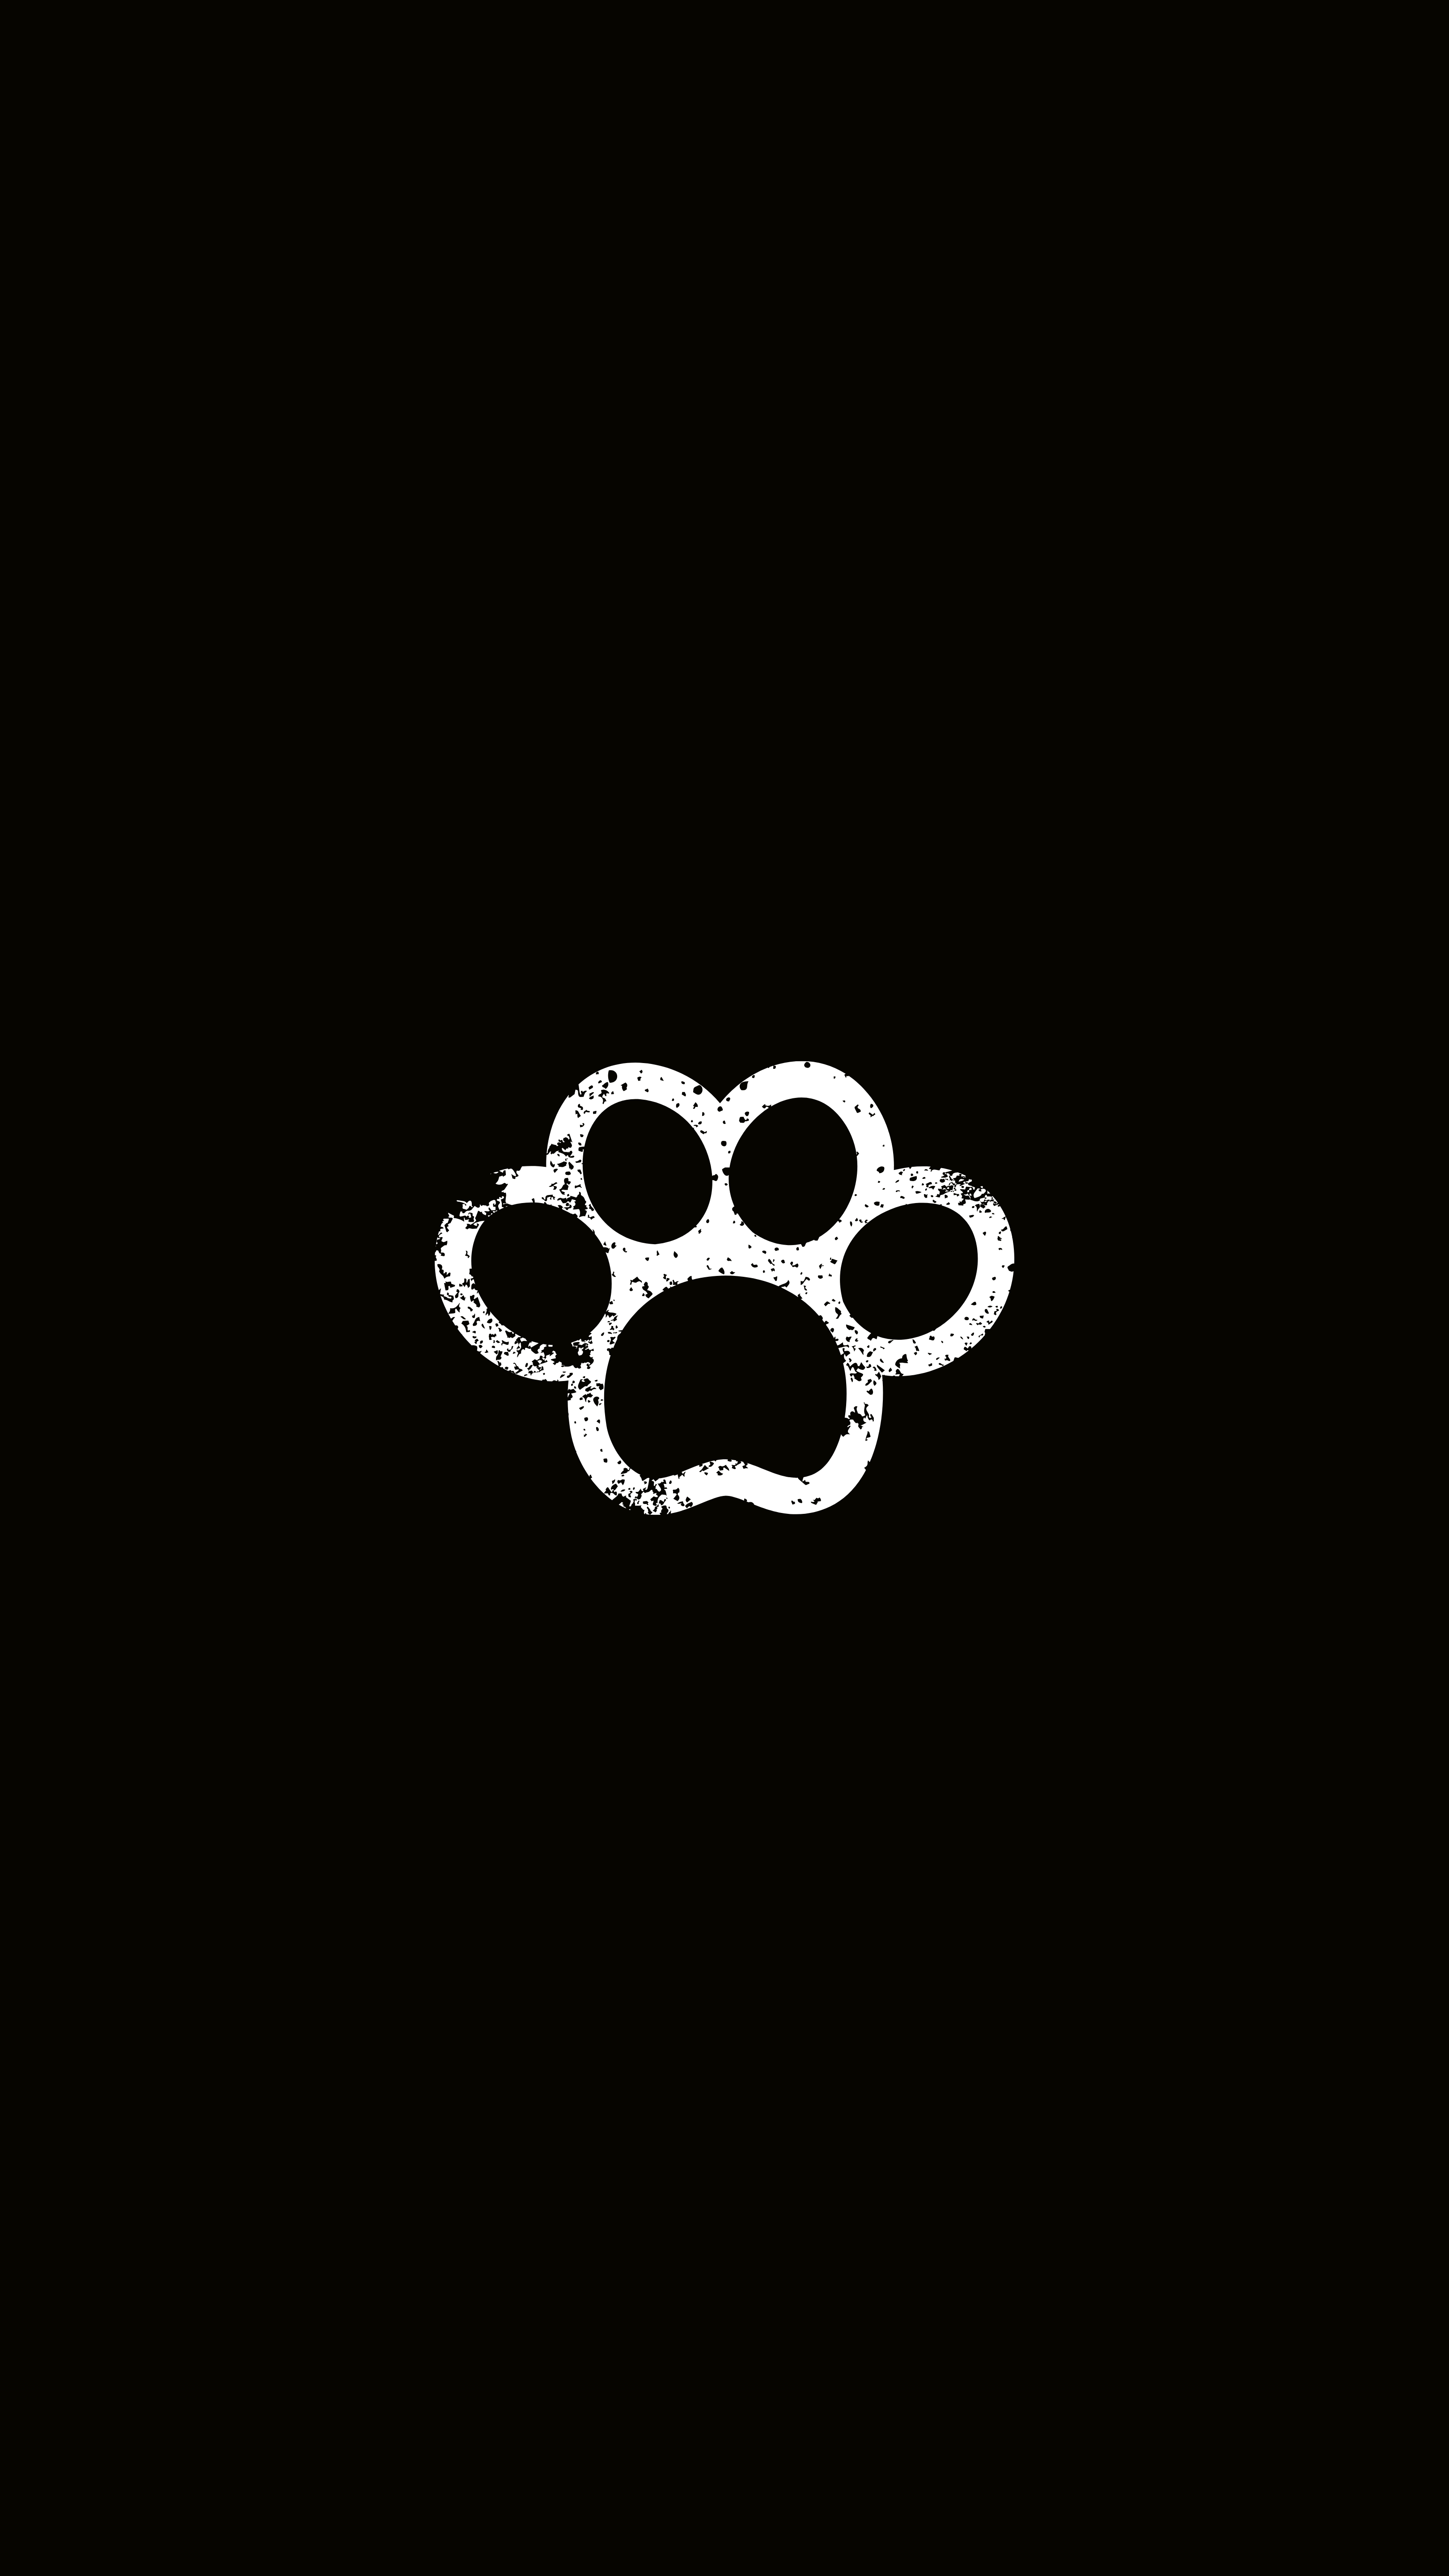 156485 download wallpaper Vector, Paw, Track, Trace, Art screensavers and pictures for free